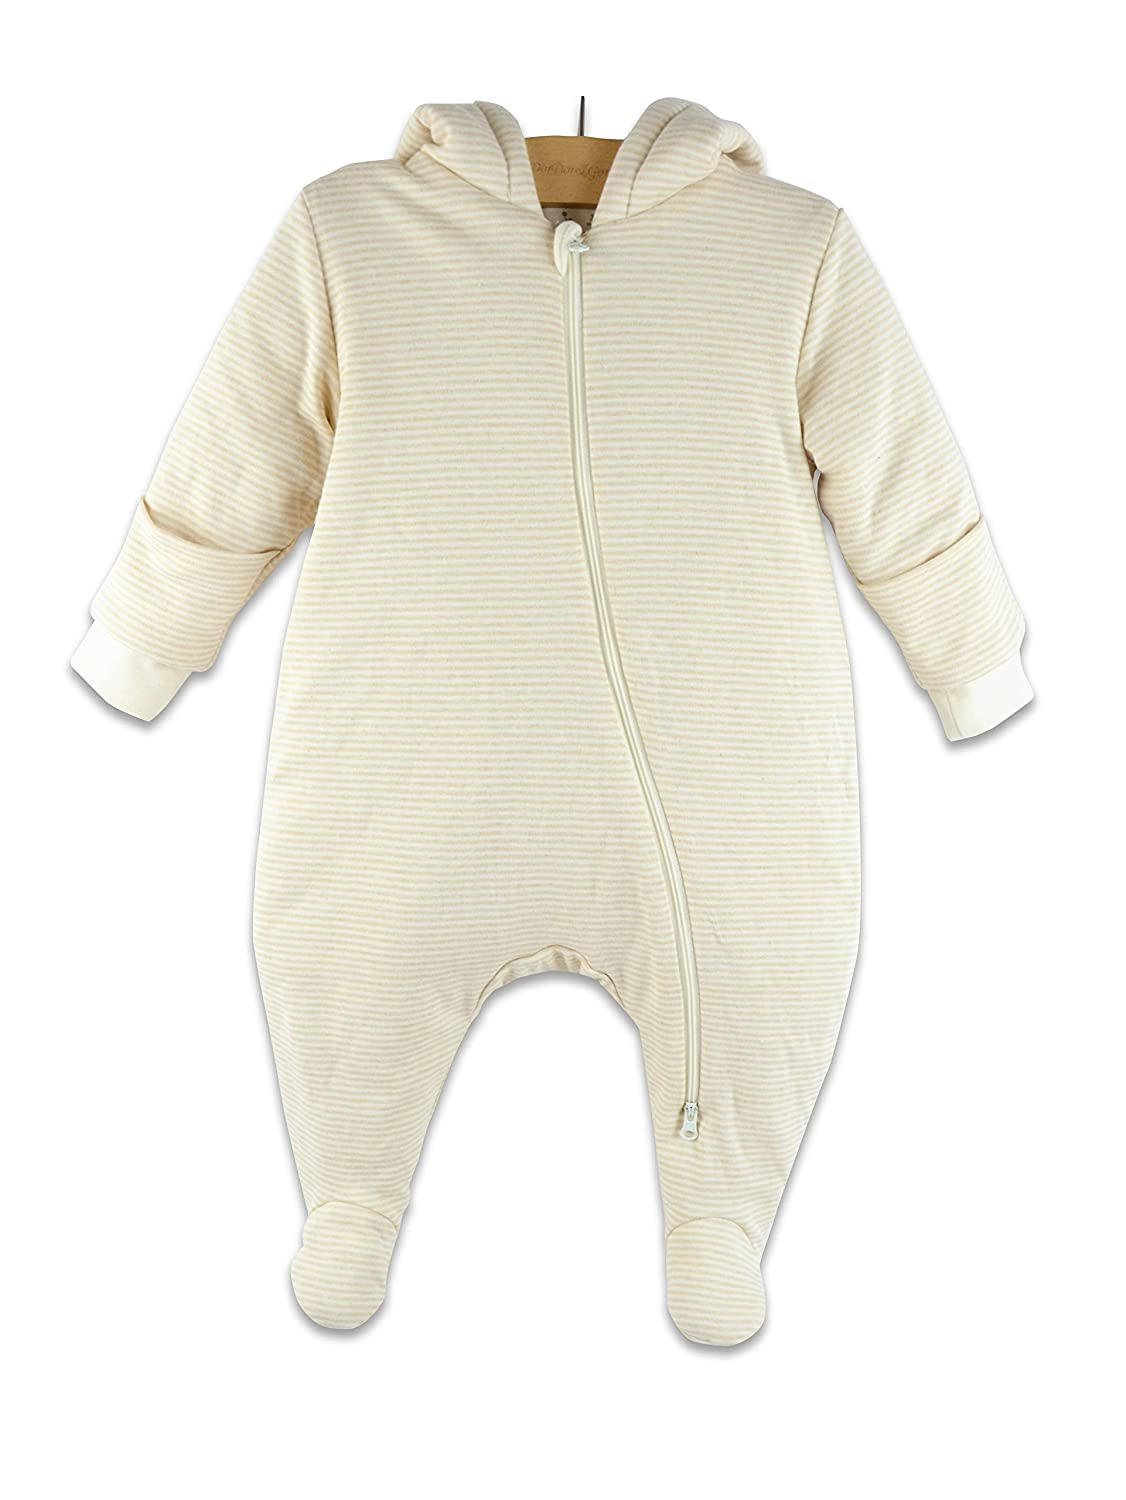 8a17ed888546 Amazon.com  Dordor   Gorgor Unisex Baby Fleece Pajamas Sleeper ...